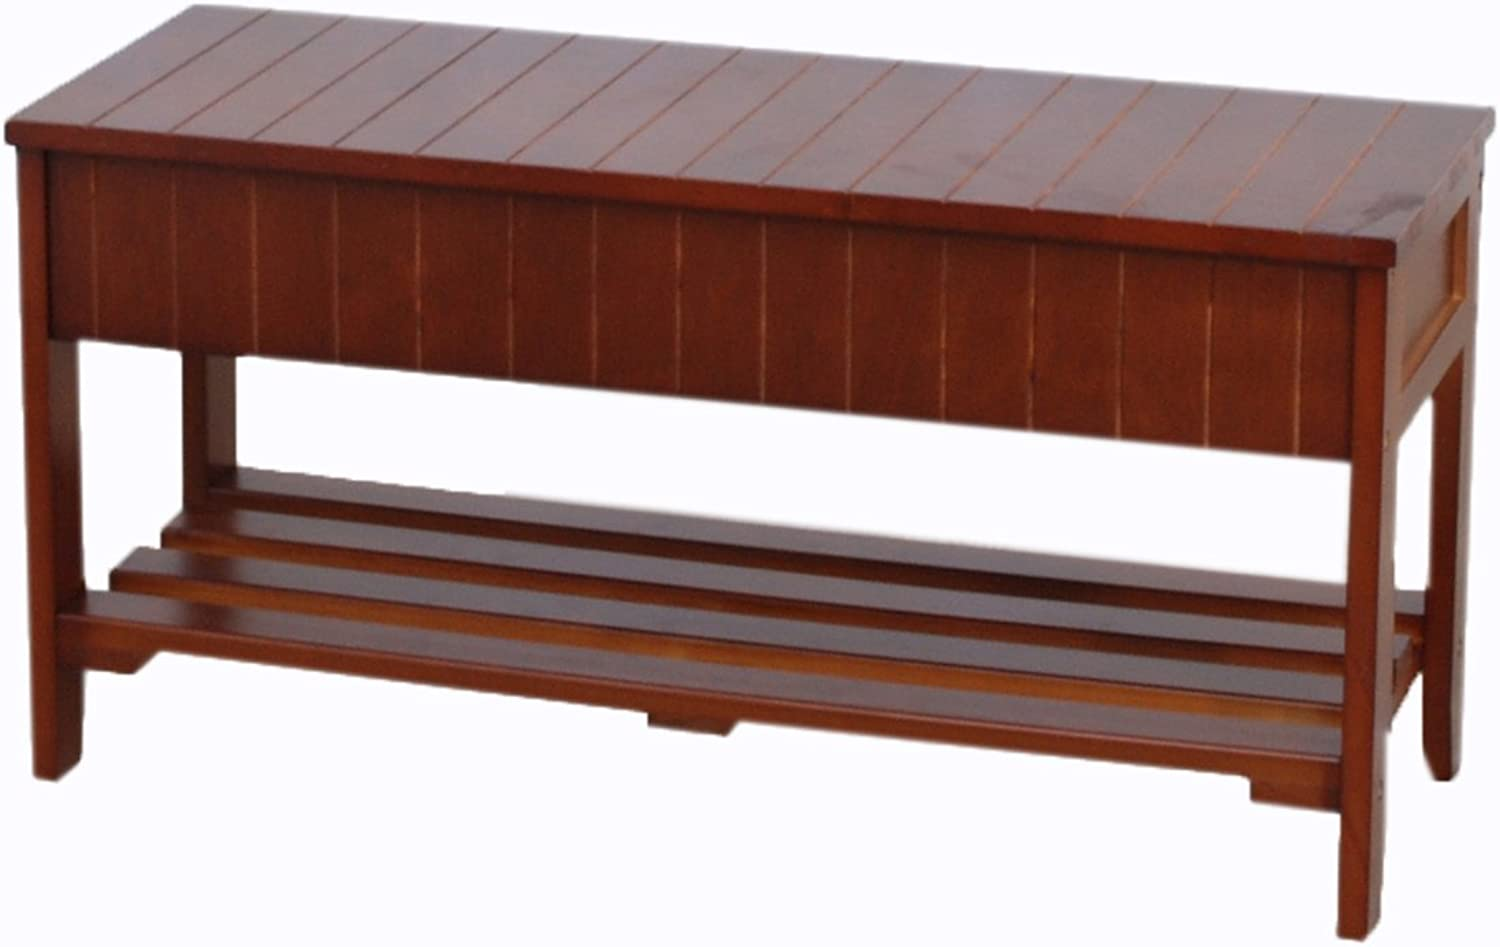 Roundhill Quality Solid Wood shoes Bench with Storage, Cherry